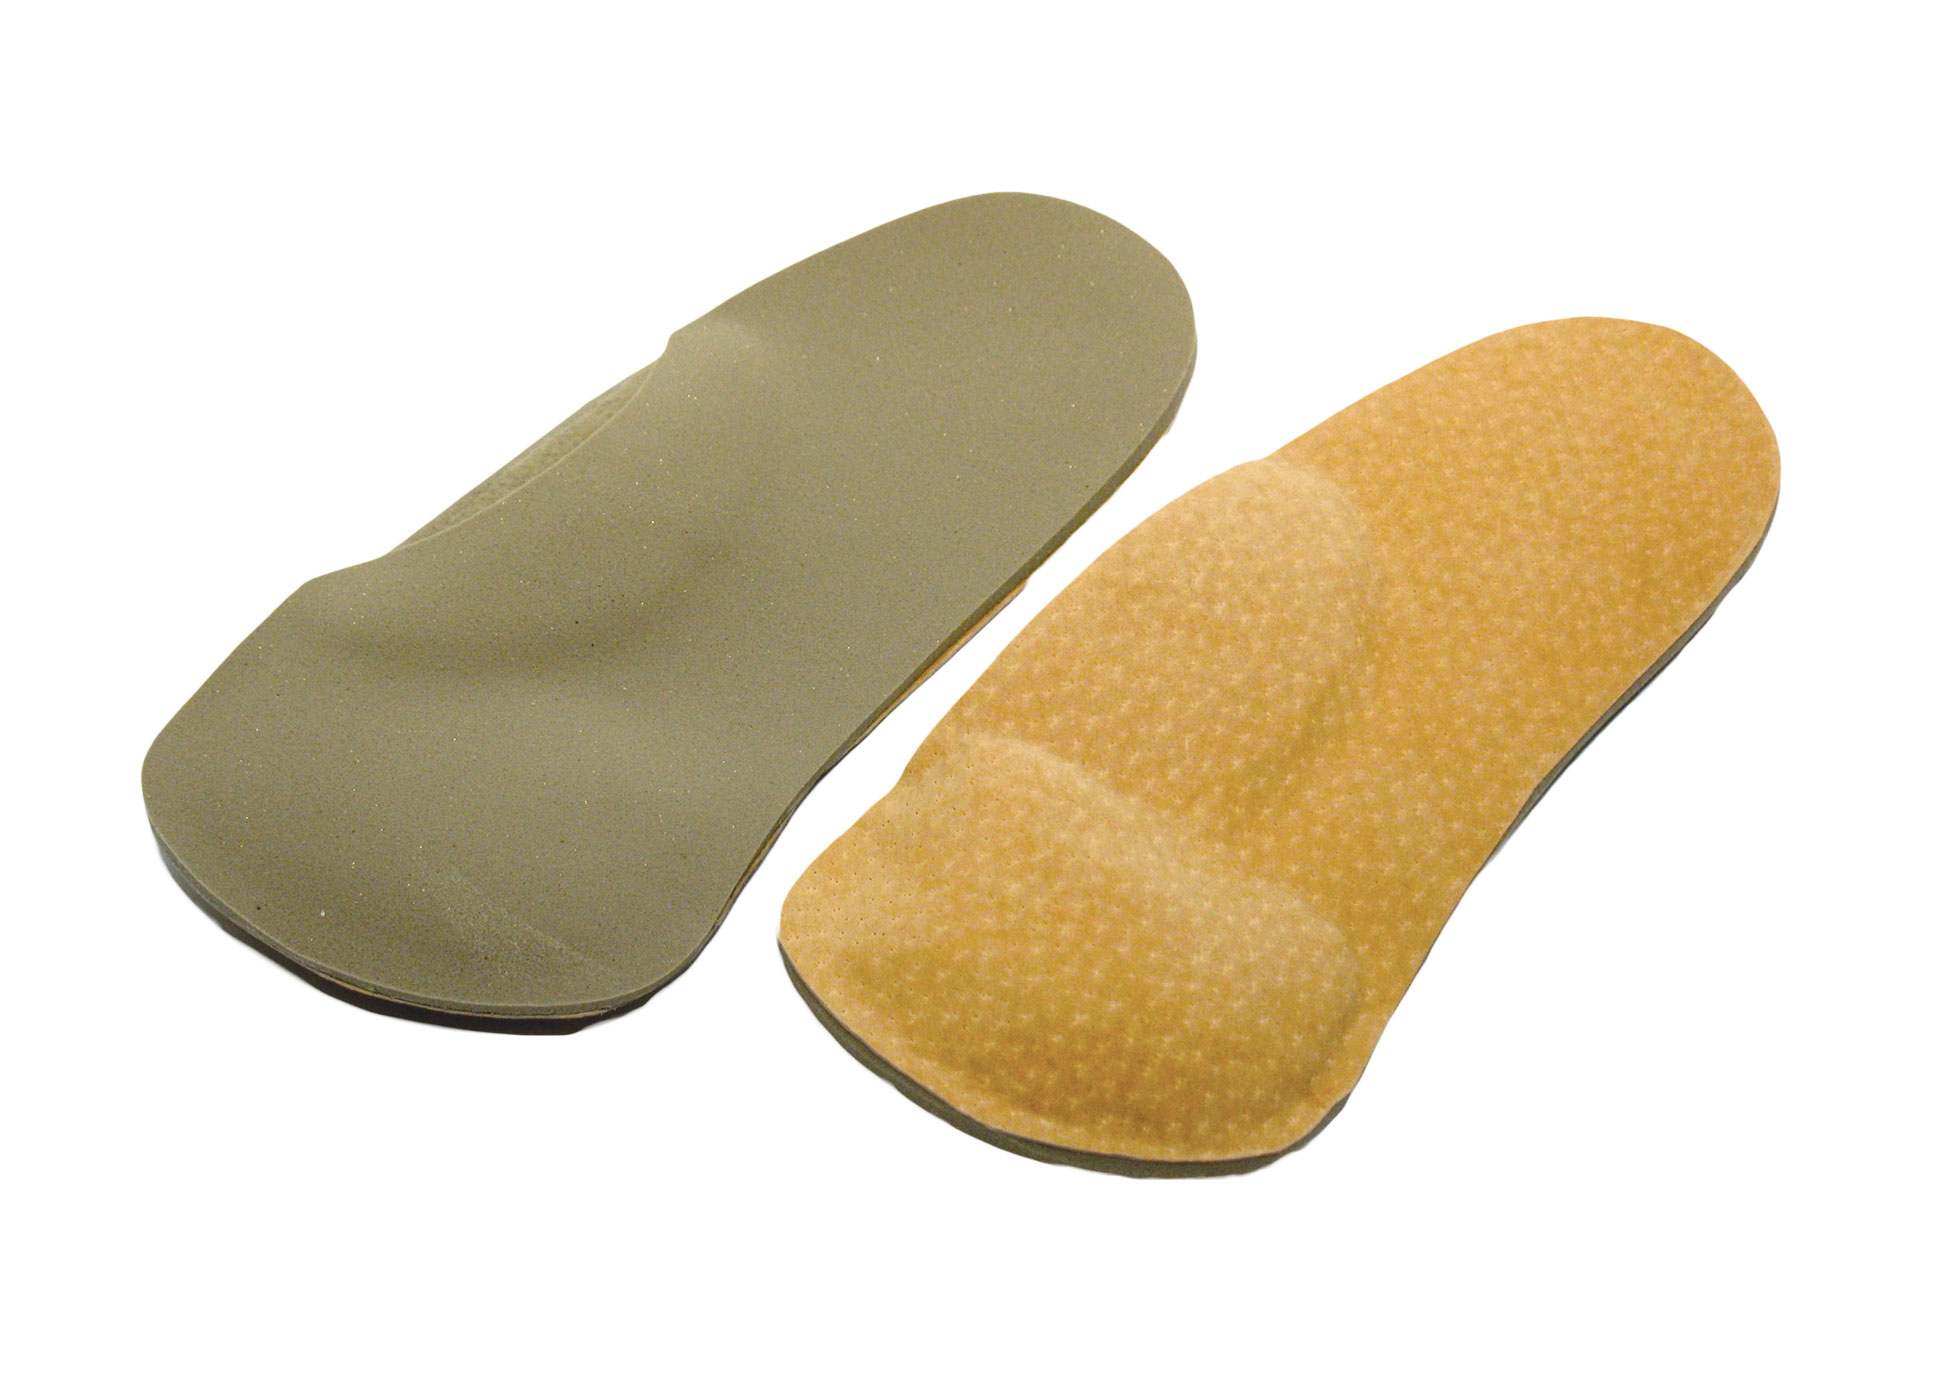 Haplabase Orthotic - Foot Supports - Model 405 - Per Pair - Met and Valgus Pads - Mens 6 - 8